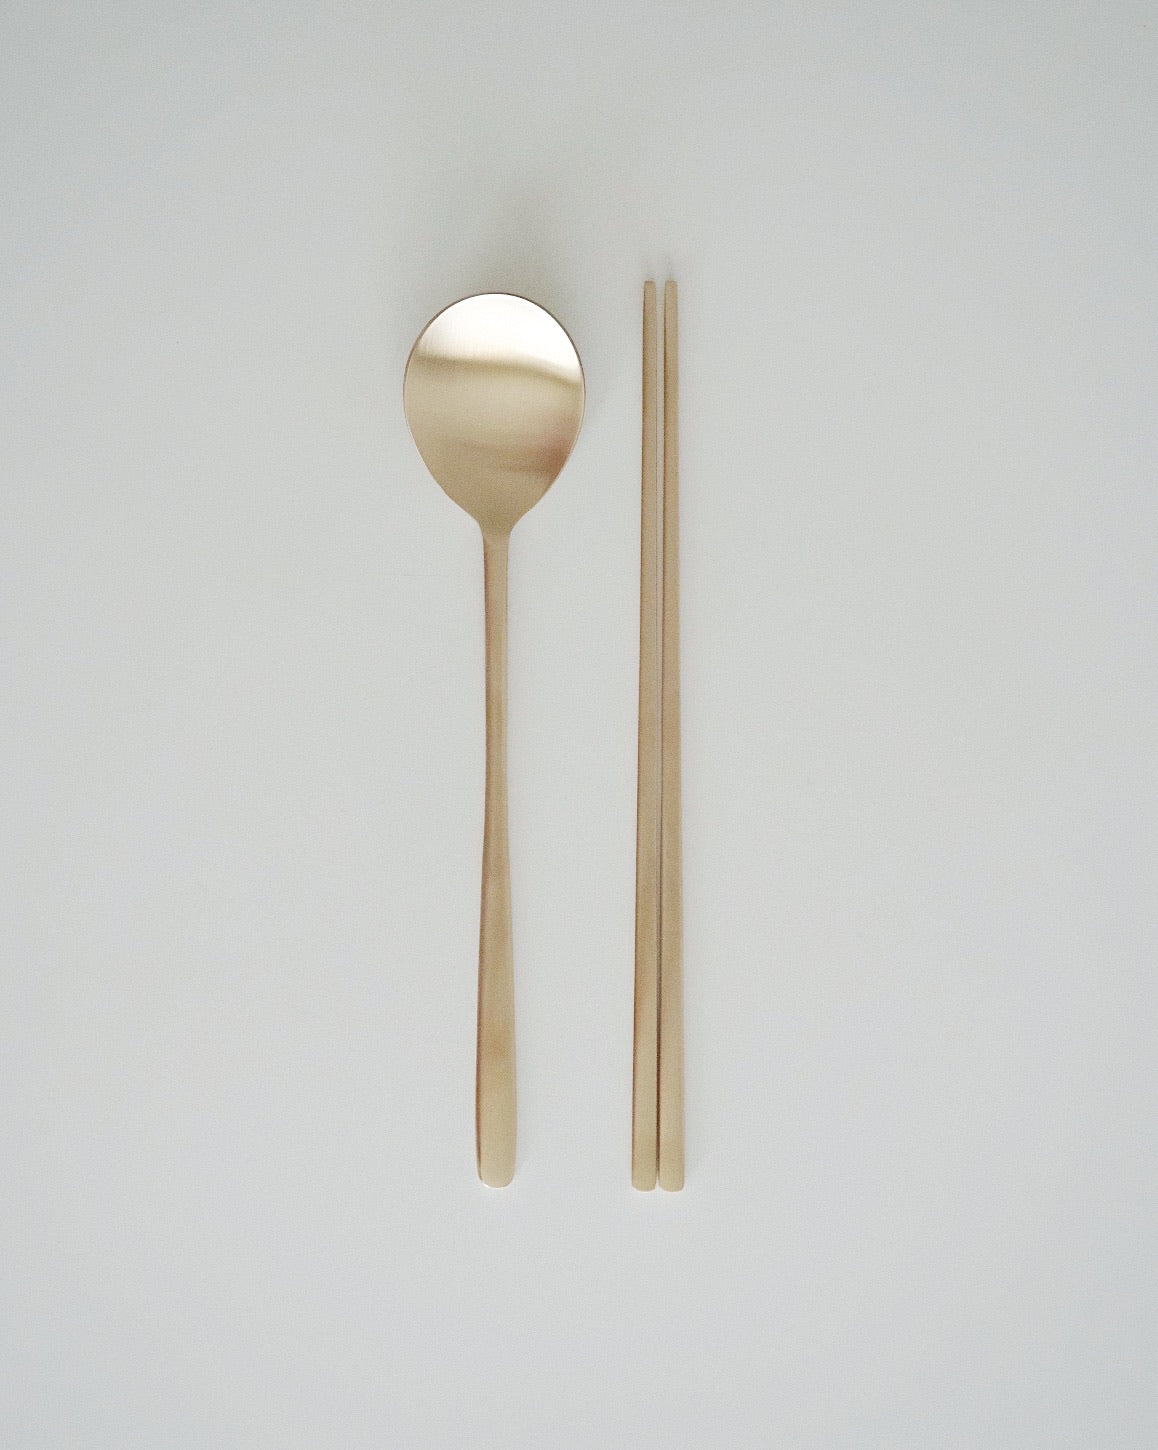 Korean Bangjja Chopstick and Spoon Set